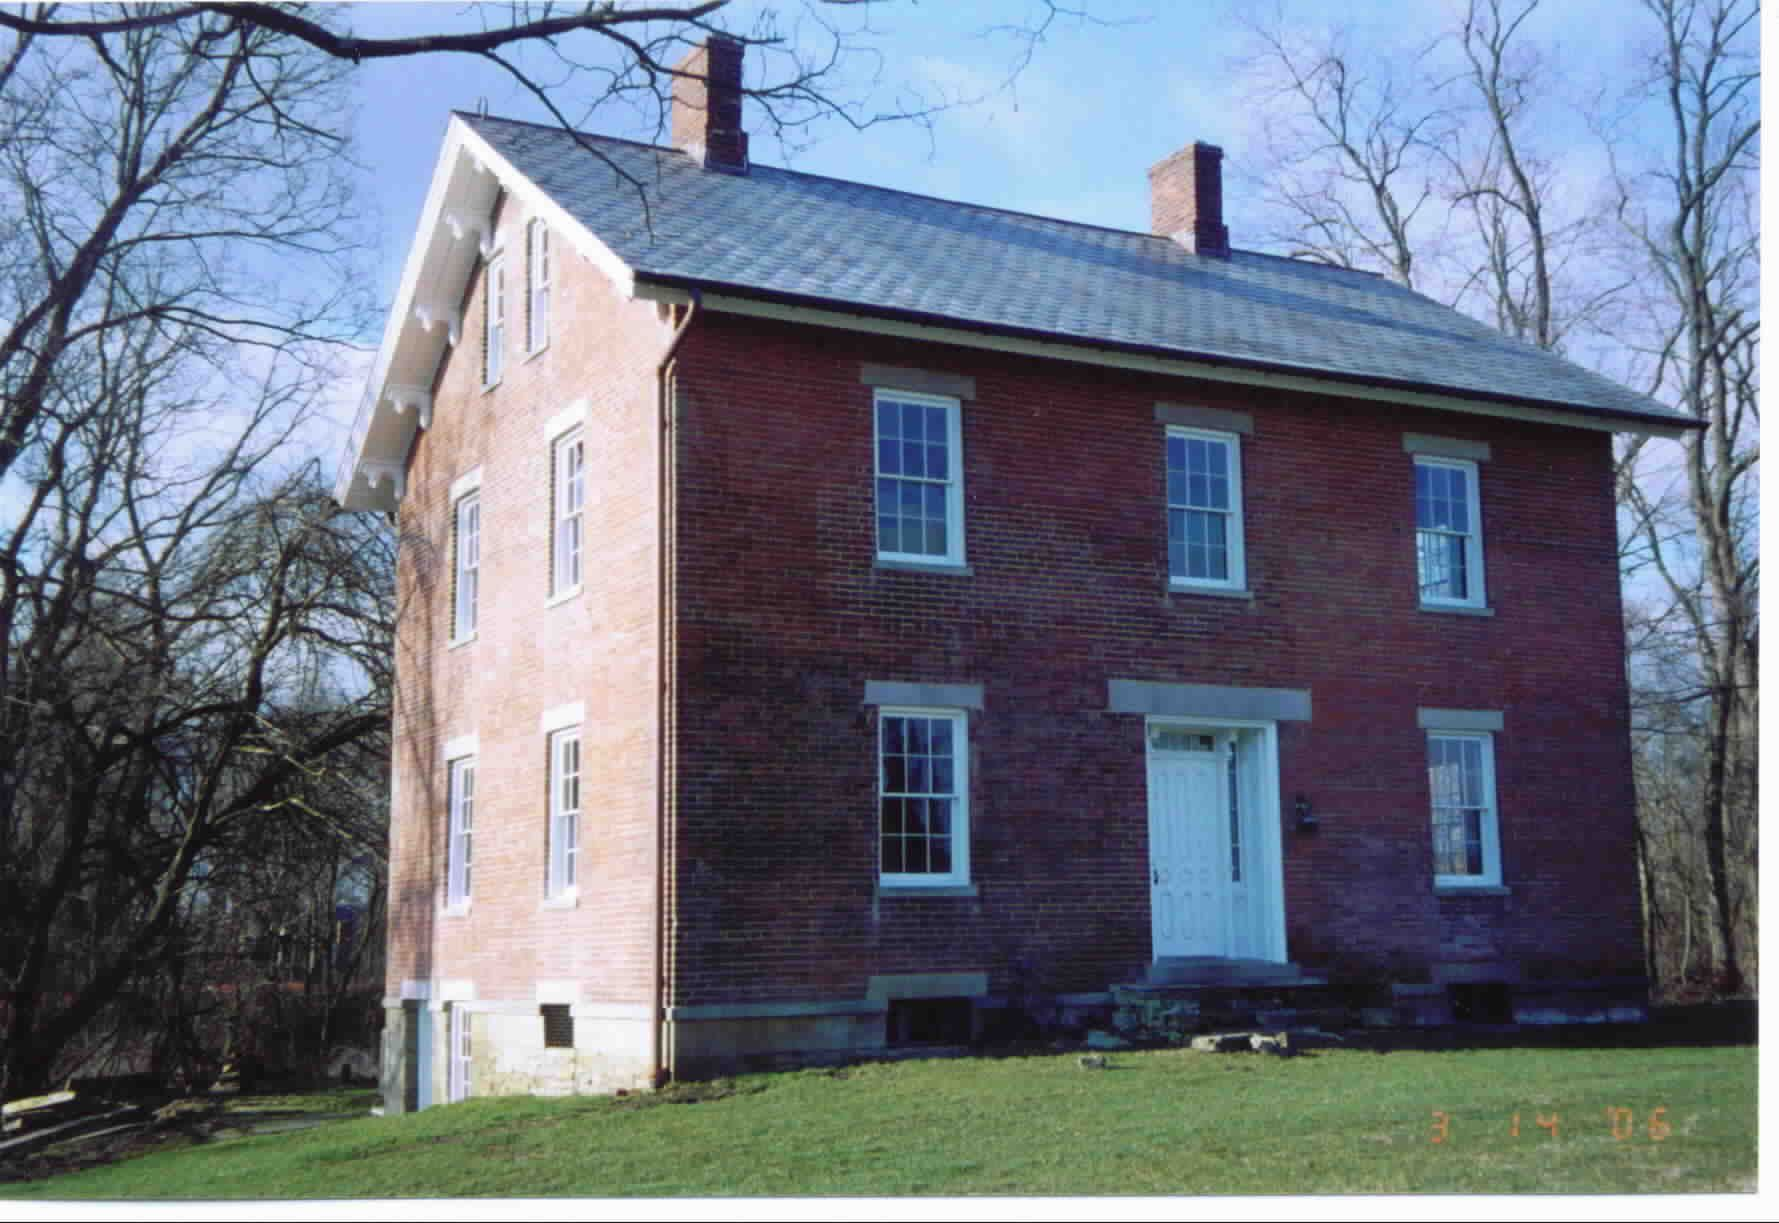 Ealy House improvements will be on display in coming weeks